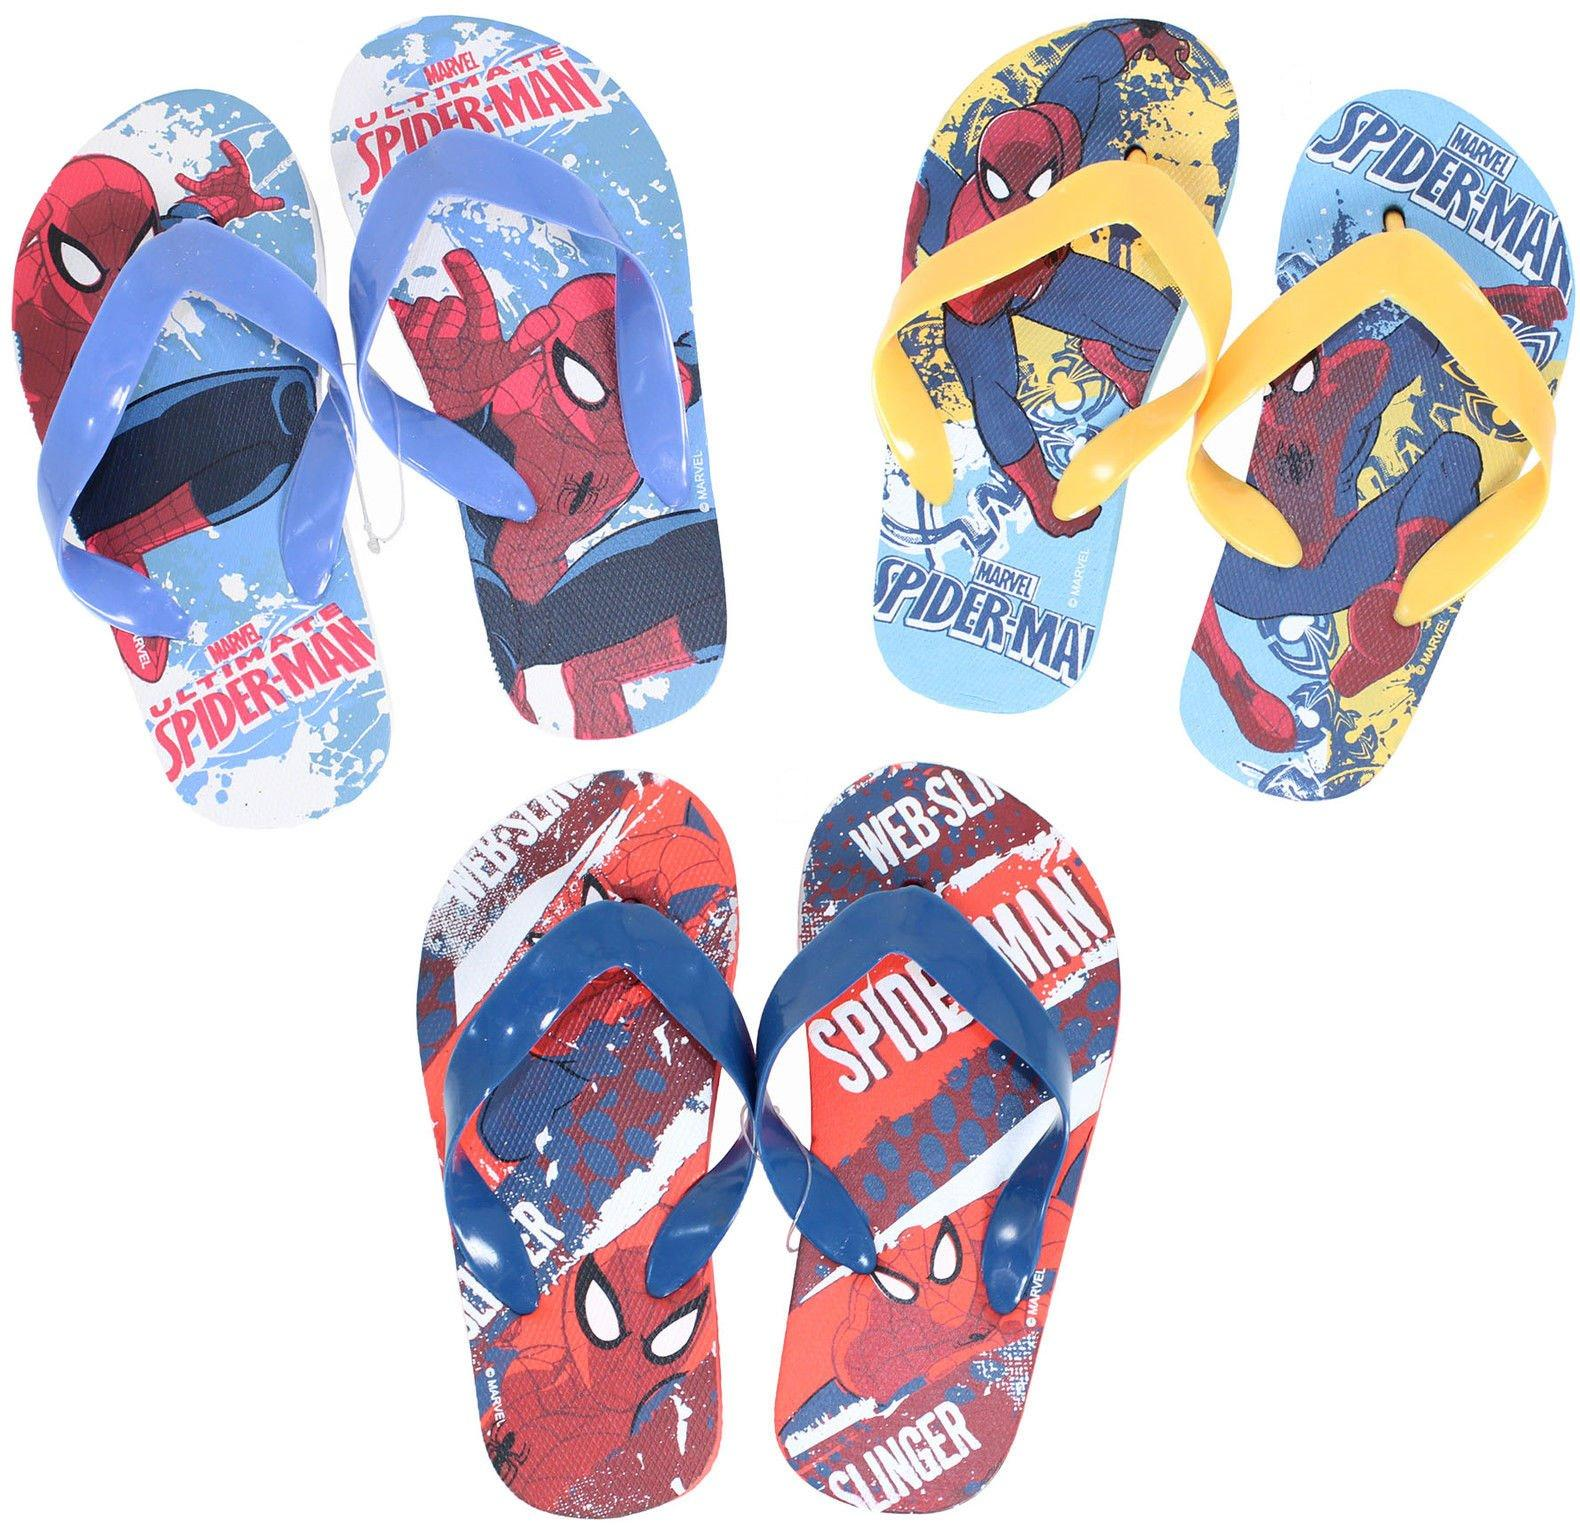 https://www.bolsoshf.com/ficheros/productos/spiderman-infradito-ciabatte-marvel-spiaggia-piscina-84353338269-extra-big-1874-605.jpg